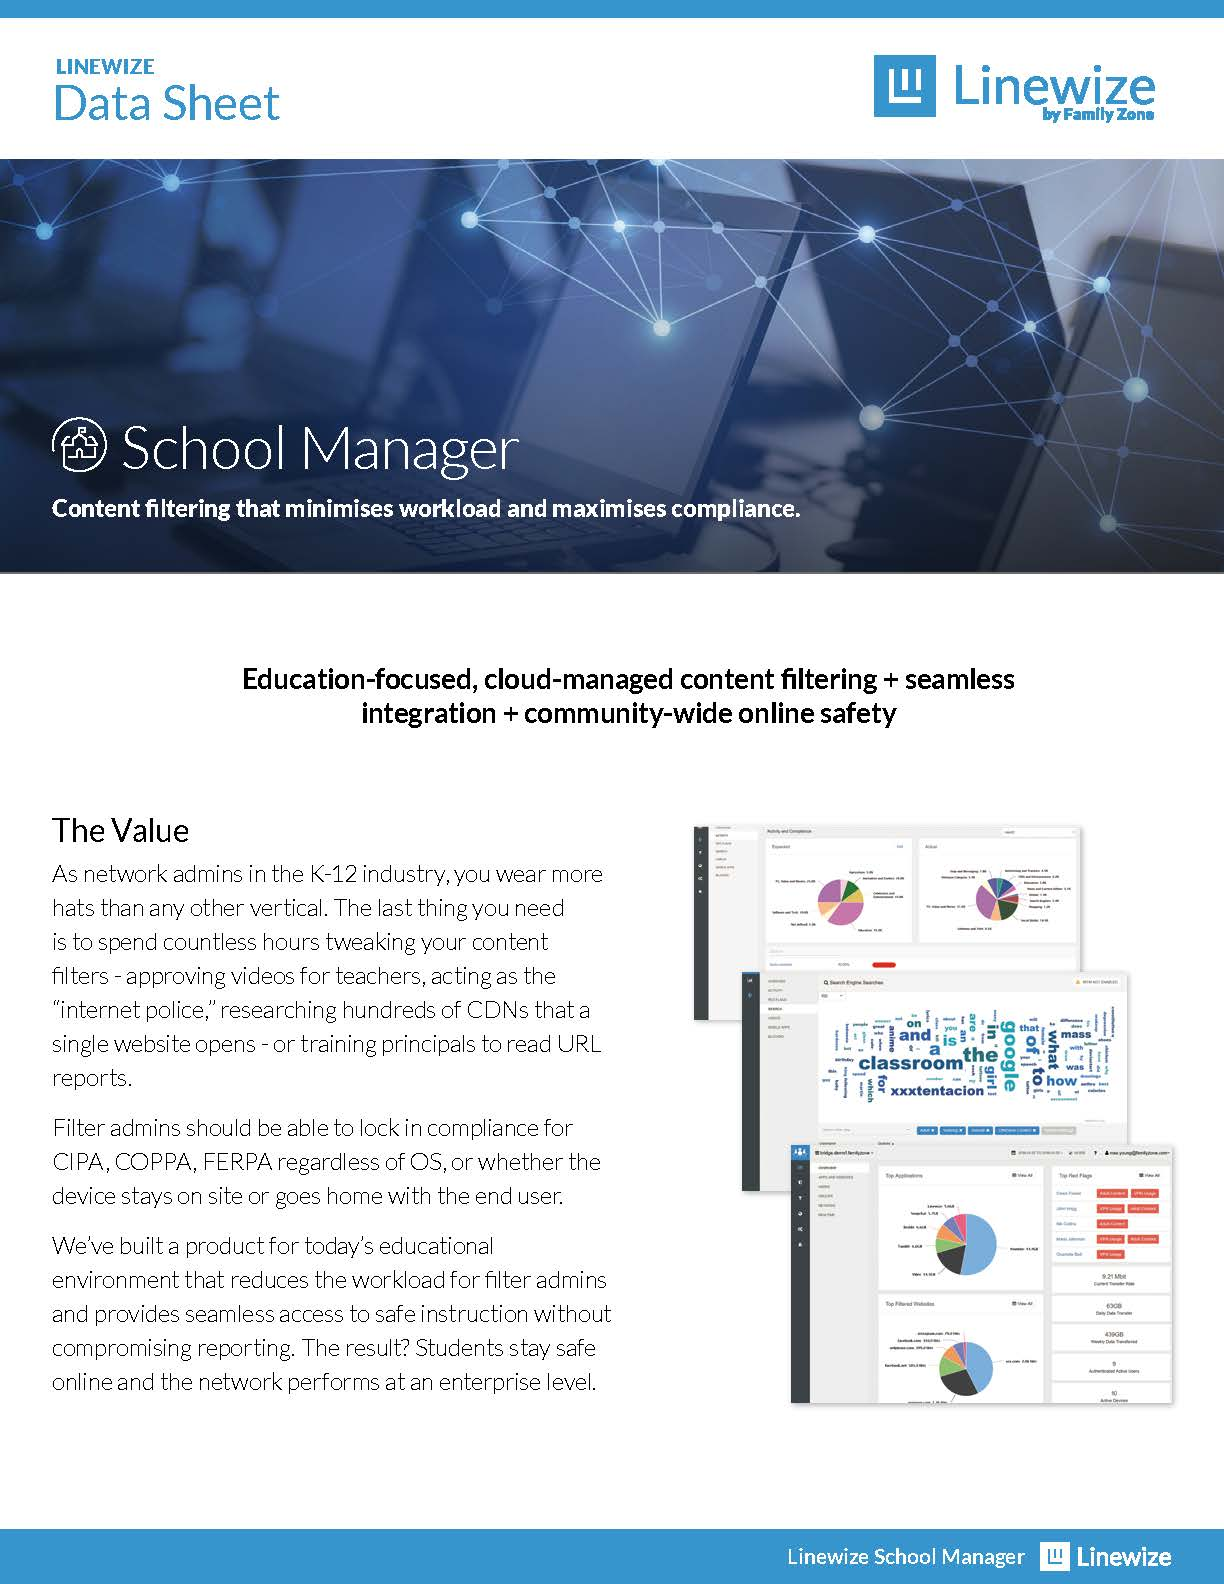 US_DATA_SHEET_SCHOOL_MANAGER_LW_Page_1